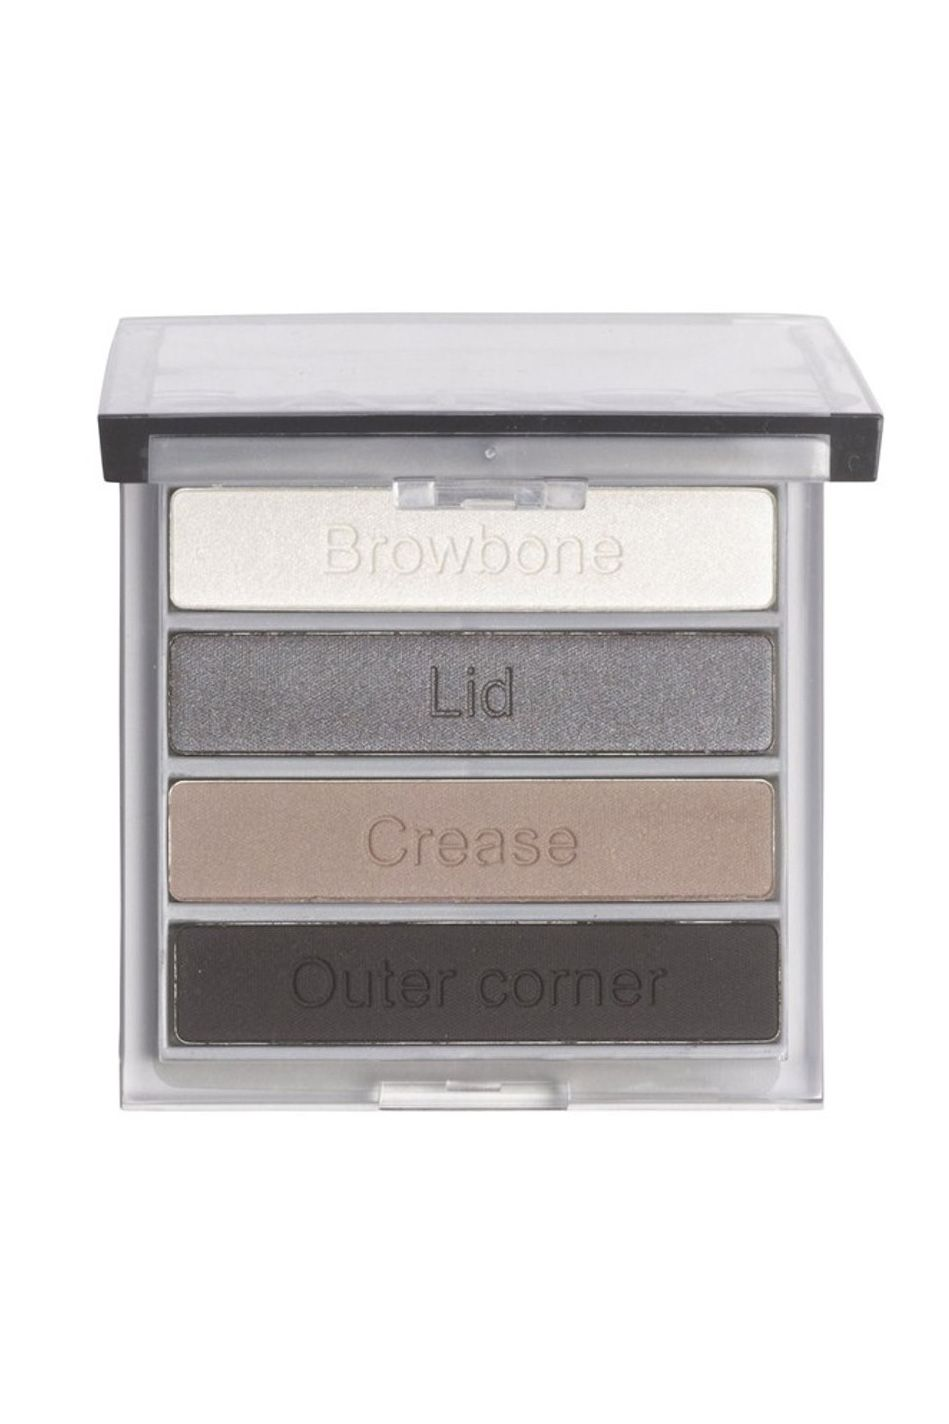 "<p>Time strapped minimalists rejoice! The four tonal shadows in this streamlined palette are each embossed with the ideal, eye-defining placement, making application a breeze. The darkest shade is for the eye's outer corner, the medium for the crease, the shimmer for the lid, and highlighter for the brow bone. Voila, done.<span class=""redactor-invisible-space"" data-verified=""redactor"" data-redactor-tag=""span"" data-redactor-class=""redactor-invisible-space""></span></p><p><span class=""redactor-invisible-space"" data-verified=""redactor"" data-redactor-tag=""span"" data-redactor-class=""redactor-invisible-space"">Cargo Cosmetics Essential Eyeshadow Palette<span class=""redactor-invisible-space"" data-verified=""redactor"" data-redactor-tag=""span"" data-redactor-class=""redactor-invisible-space"">, $34; <a href=""https://www.beautybar.com/p/cargo-cosmetics-essential-palette-1073313?sku=CGC-034&qid=2863593311&sr=1-7"" target=""_blank"">beautybar.com</a></span><br></span></p>"